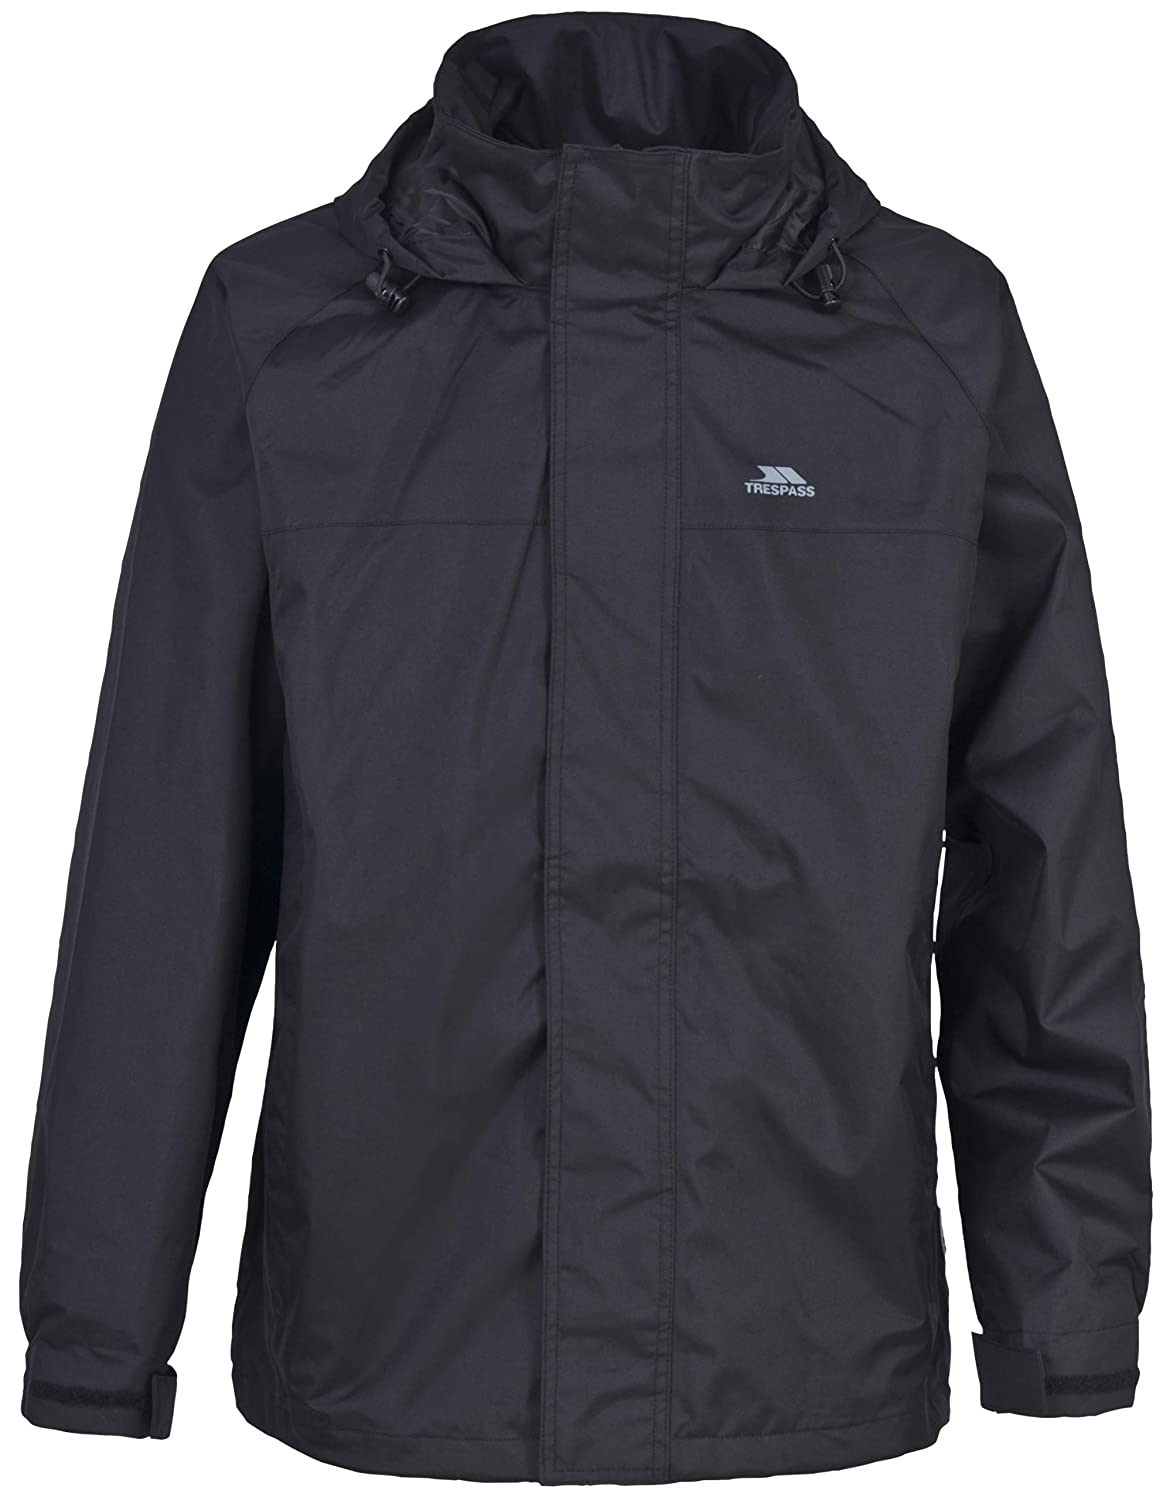 Trespass Nabro Jacket – Black kaufen